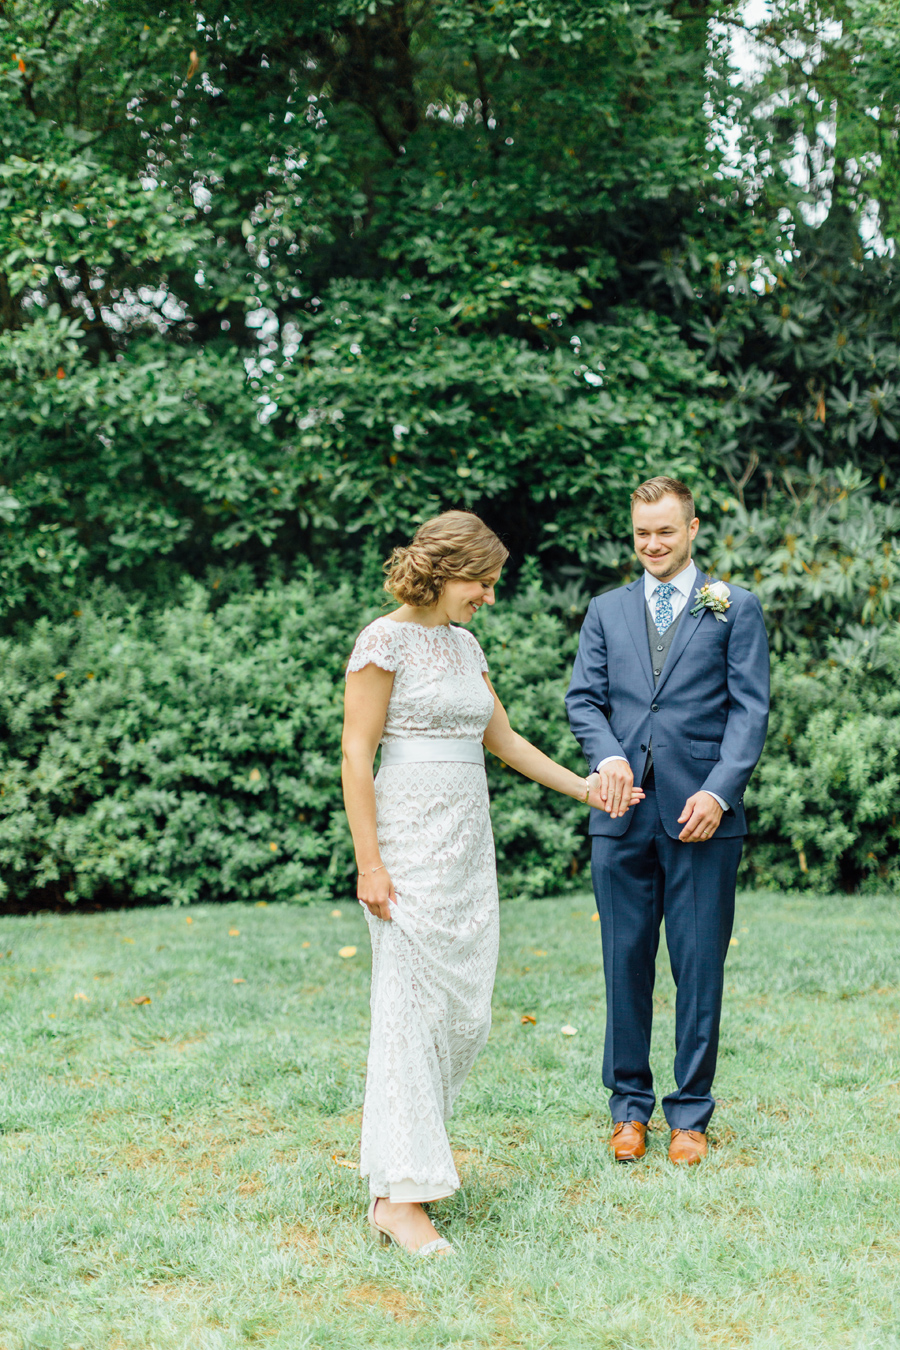 greenville-country-club-wedding-philadelphia-wedding-photographer-rebekah-viola-photography (101).jpg